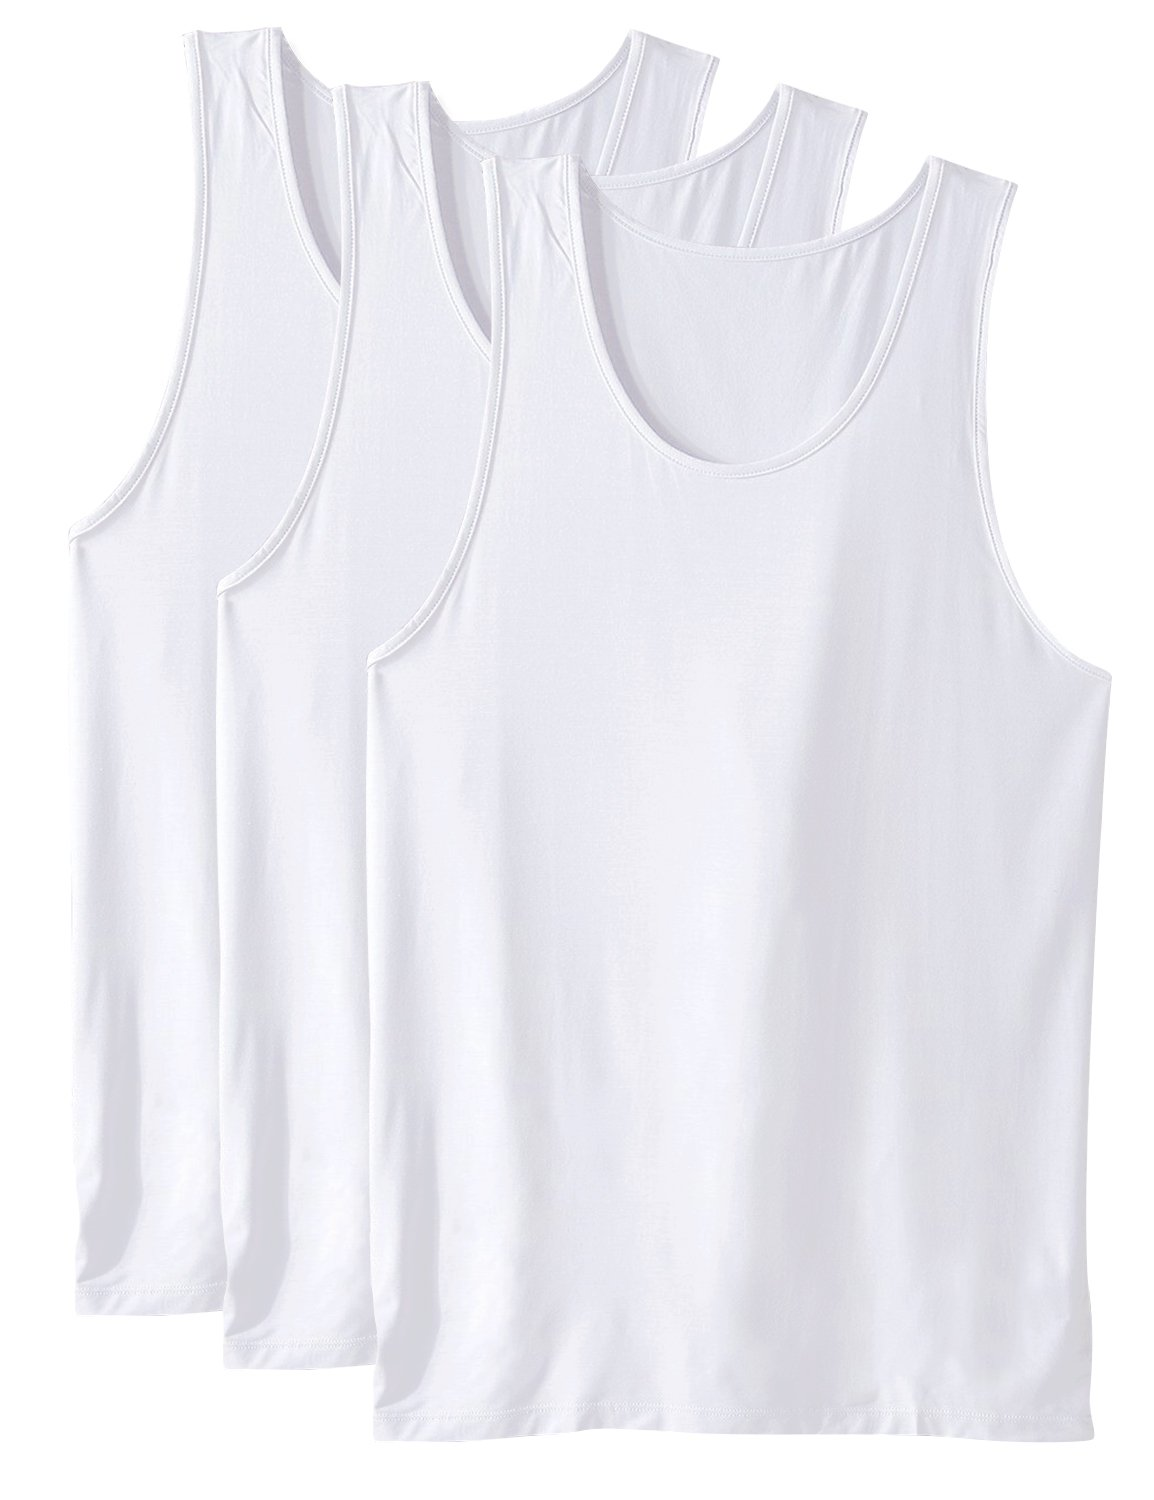 David Archy Men's 3 Pack Bamboo Rayon Undershirts Crew Neck Tank Tops(White,S)